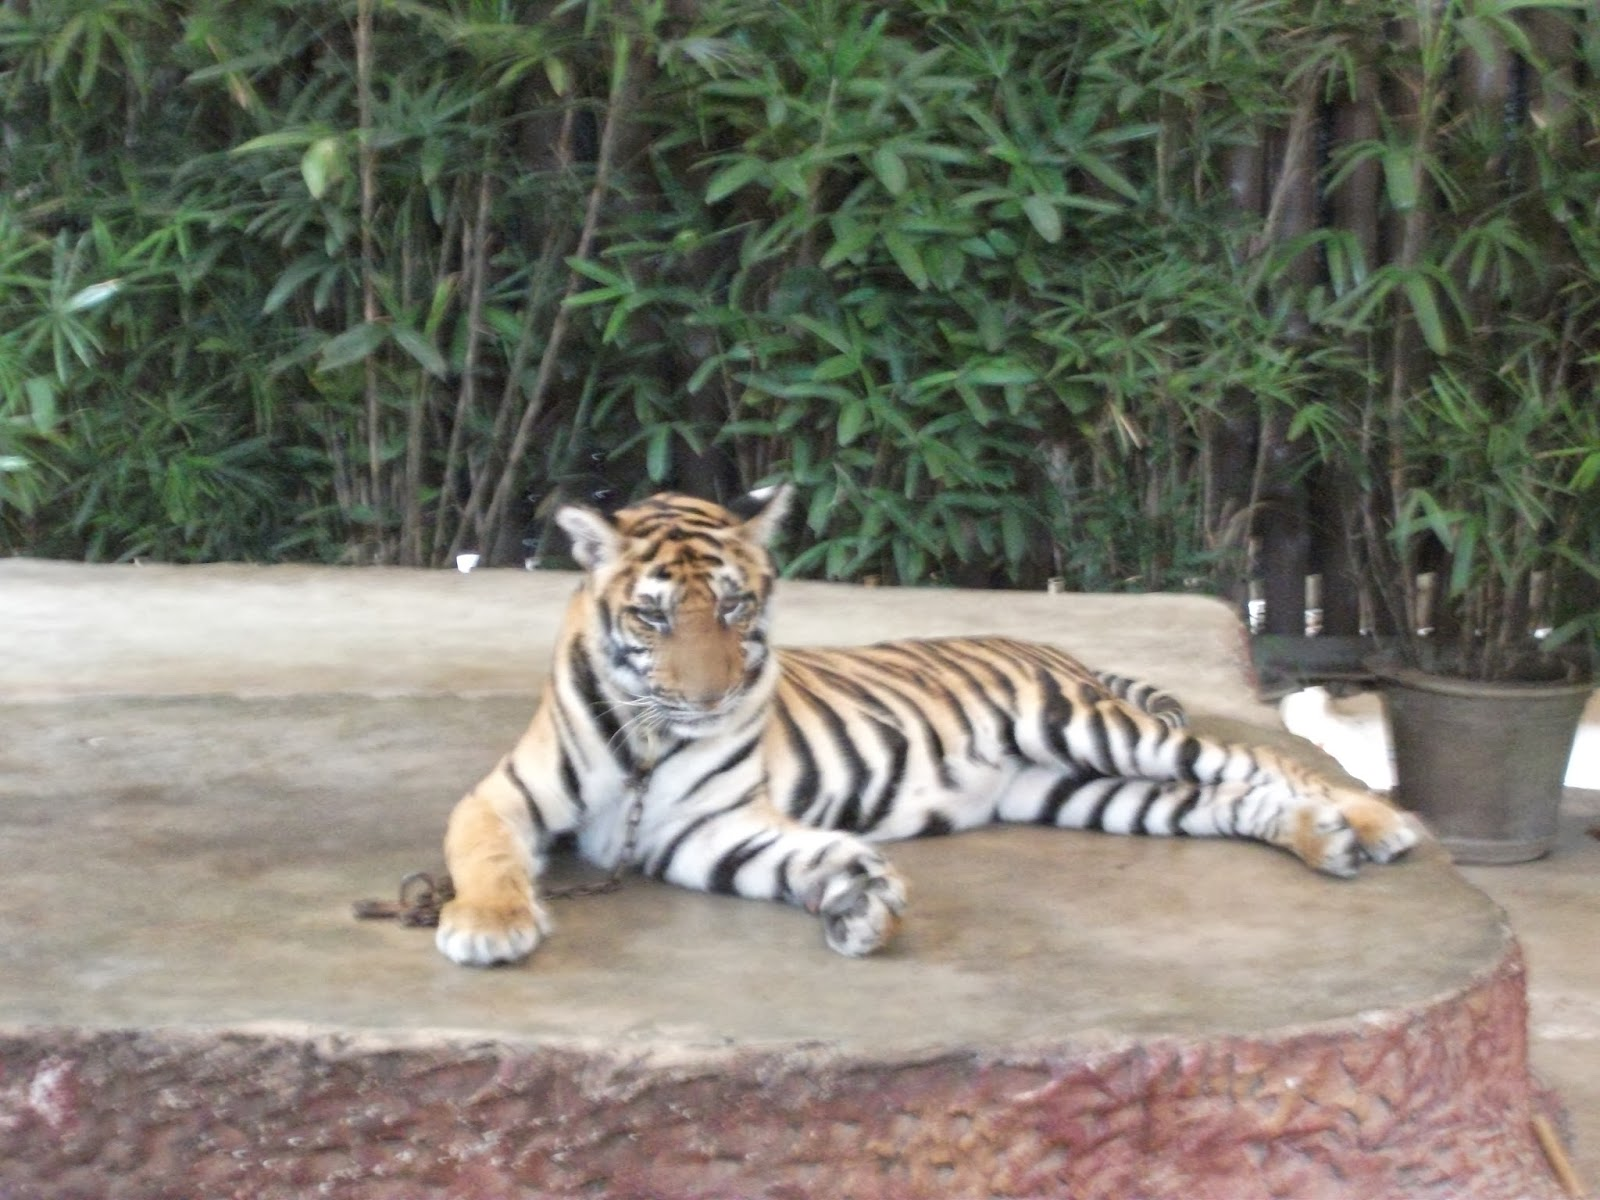 Tiger cub at Nooch Tropical Garden